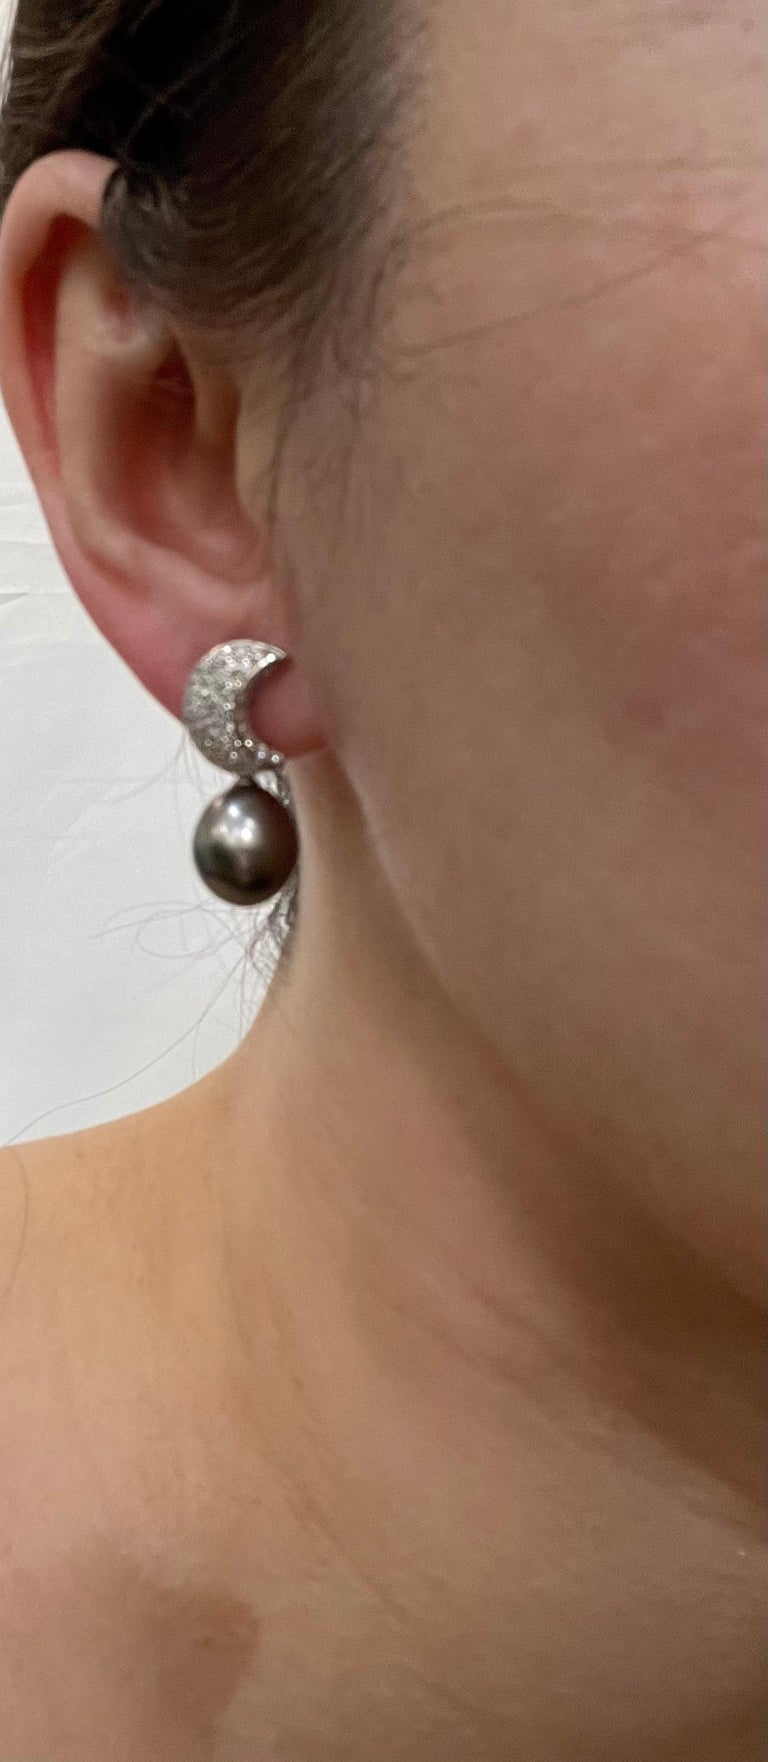 Grey Black Tahitian Cocktail Dangling Earrings with Diamonds 18 Karat White Gold For Sale 11